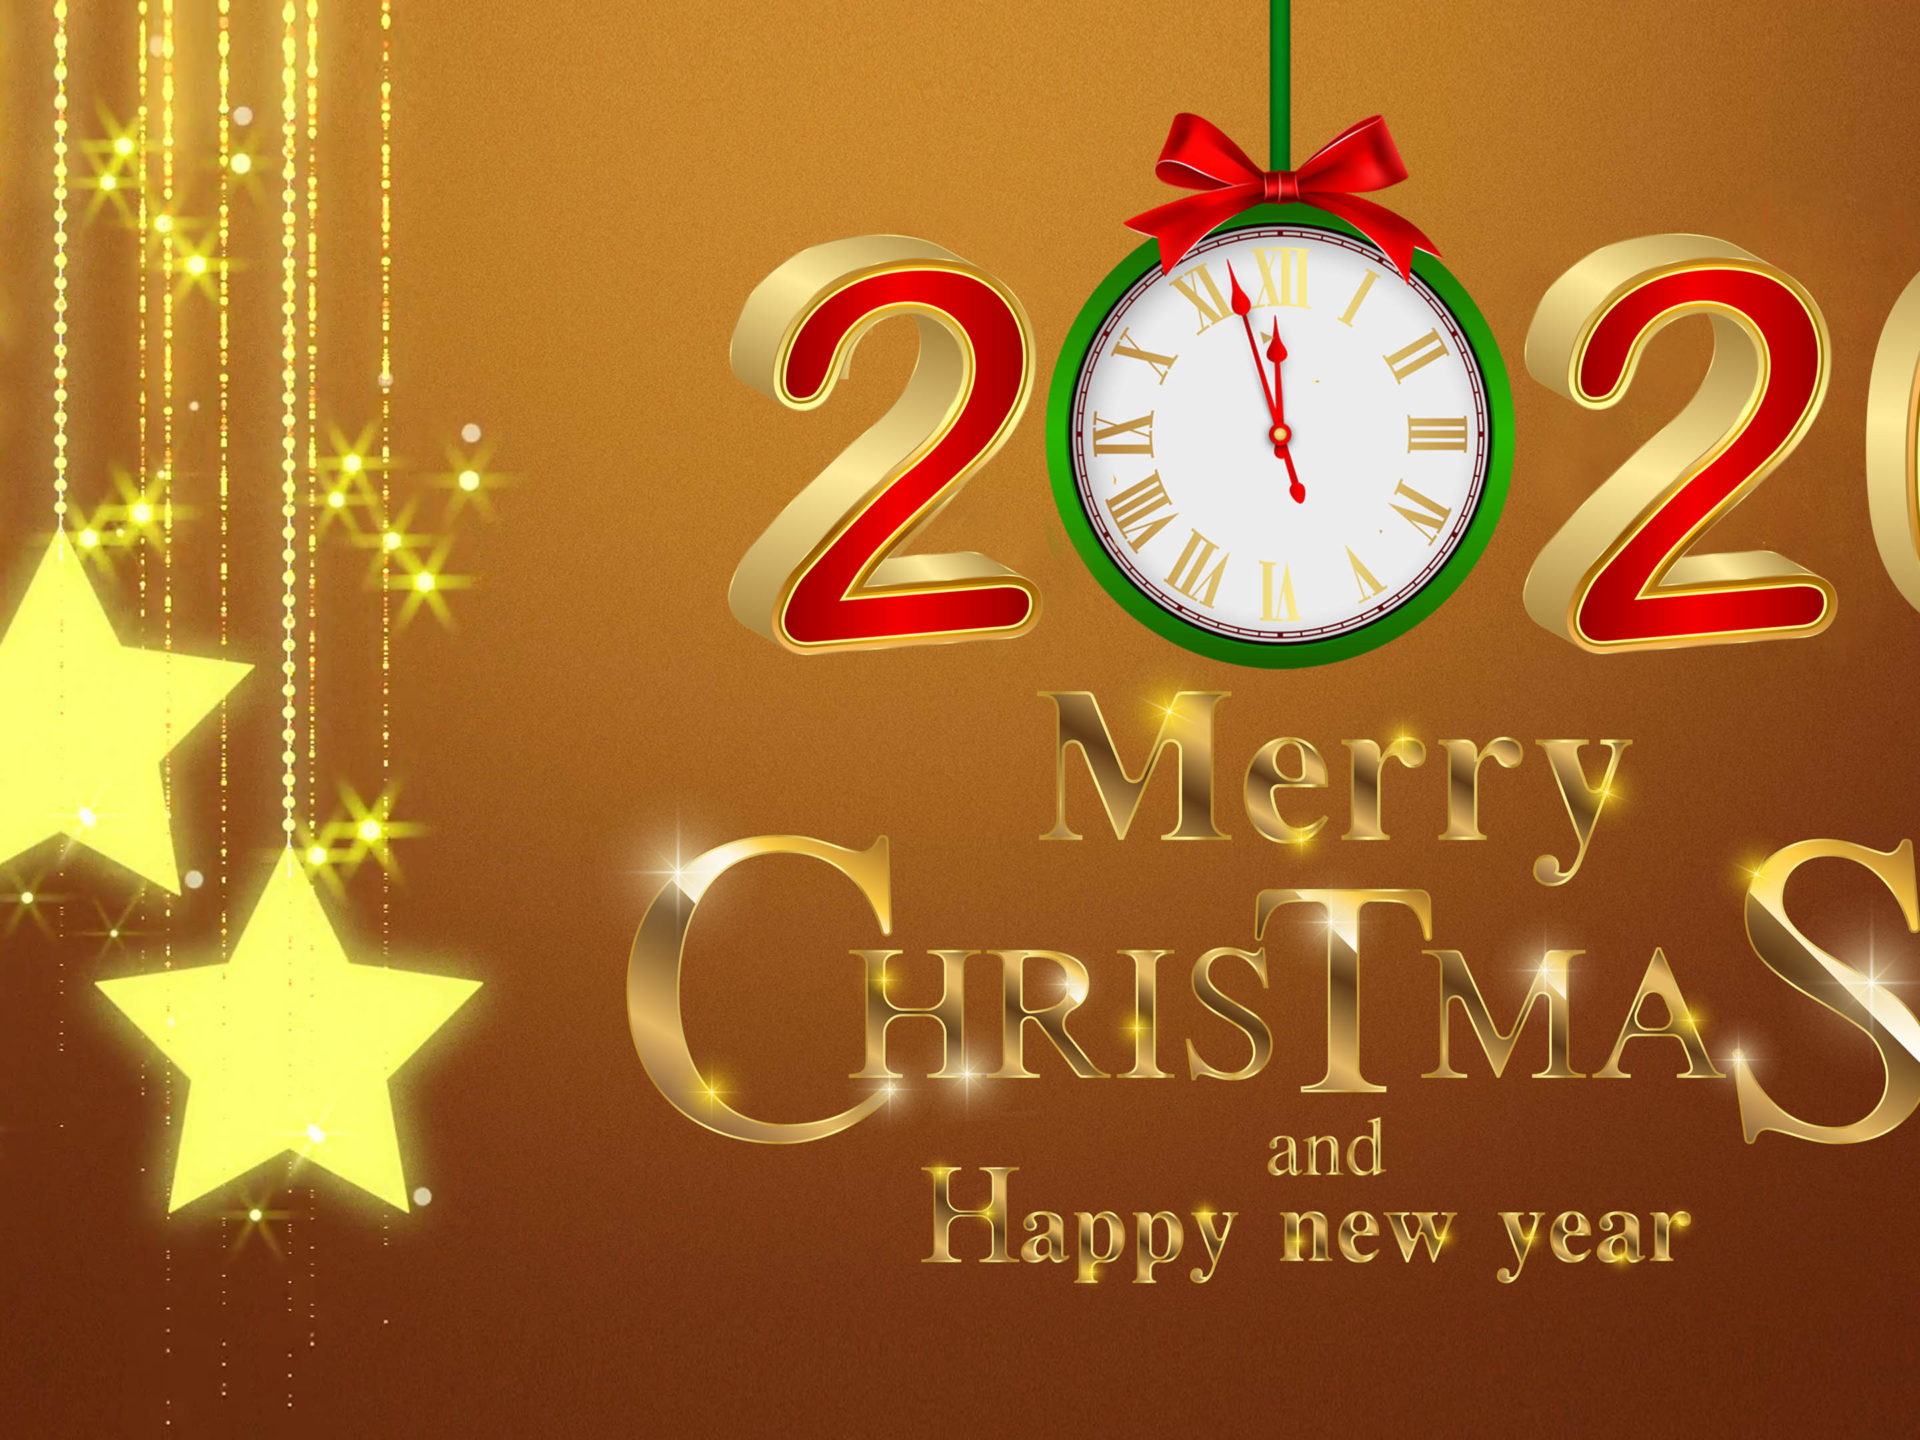 Merry Christmas And Happy New Year 2020 Gold 4k Ultra Hd Desktop 1920x1440